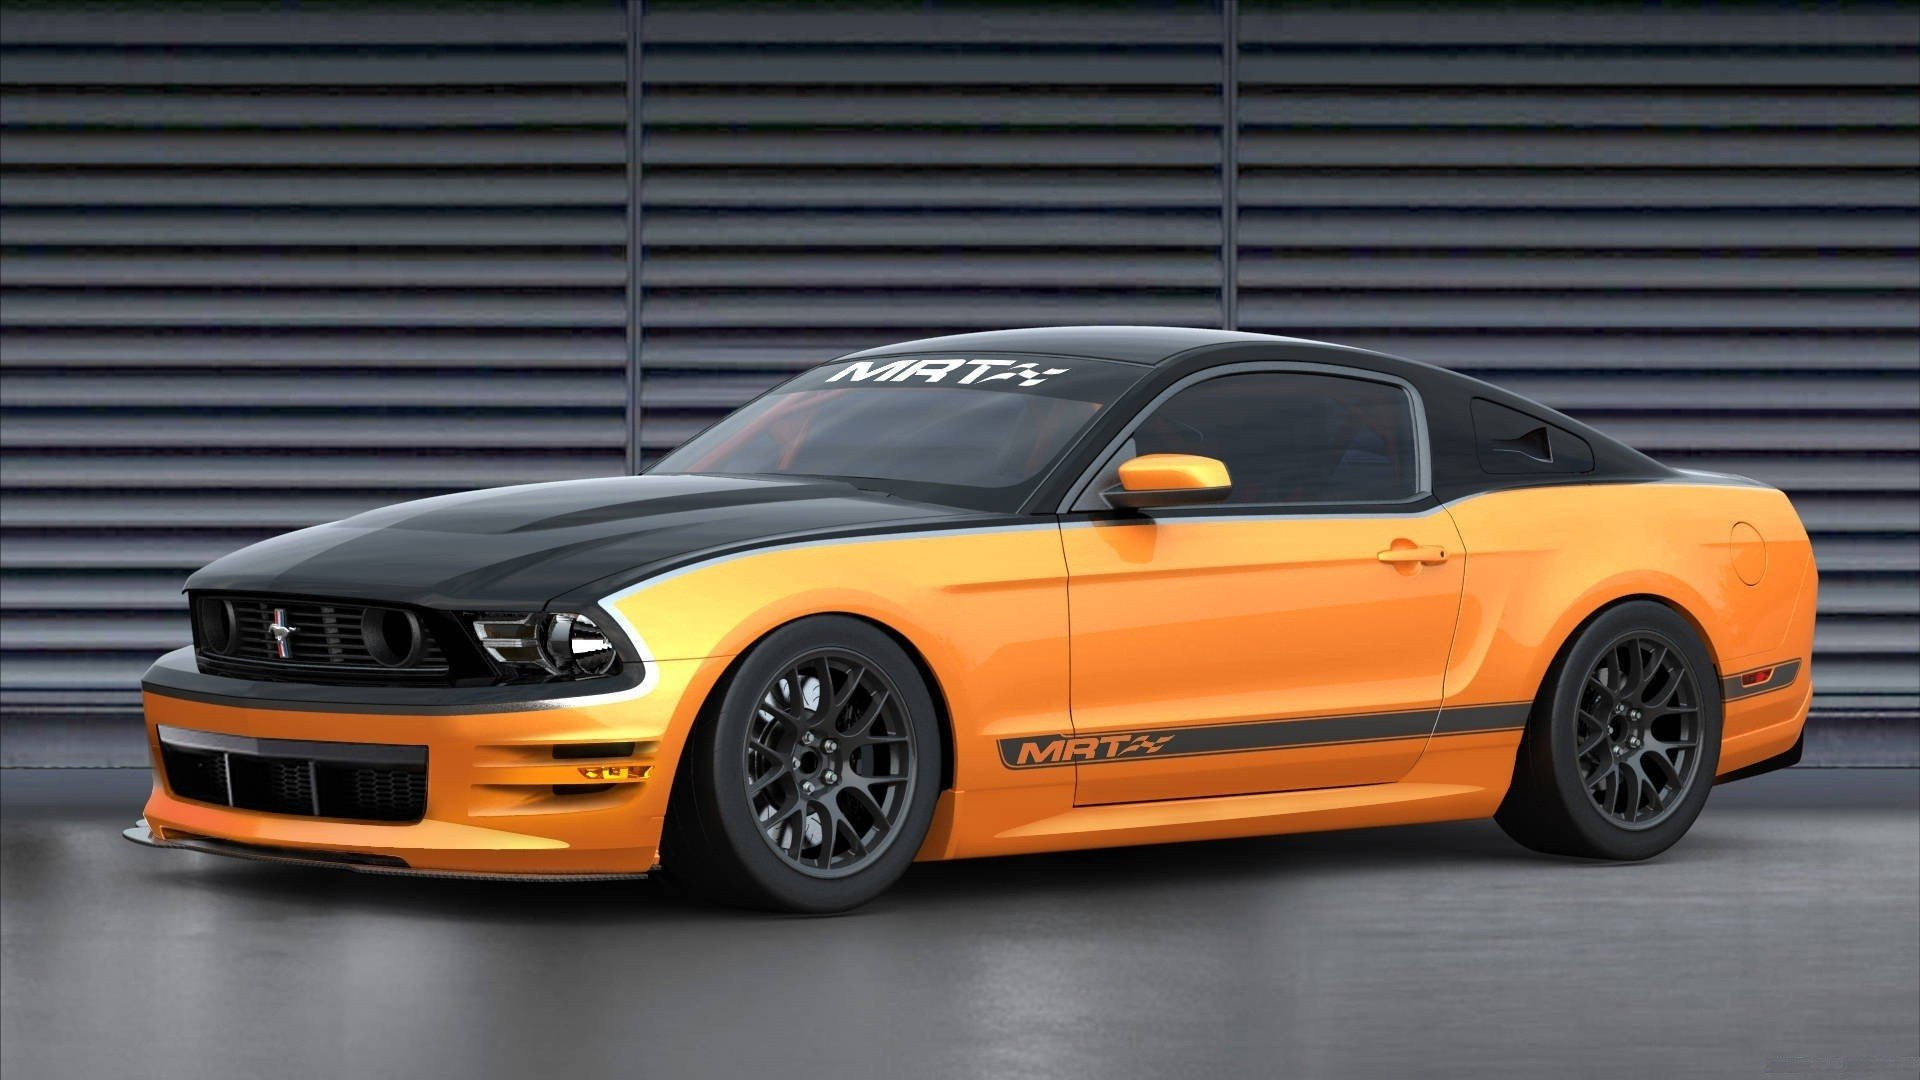 Ford Mustang Shelby Gt muscle cars